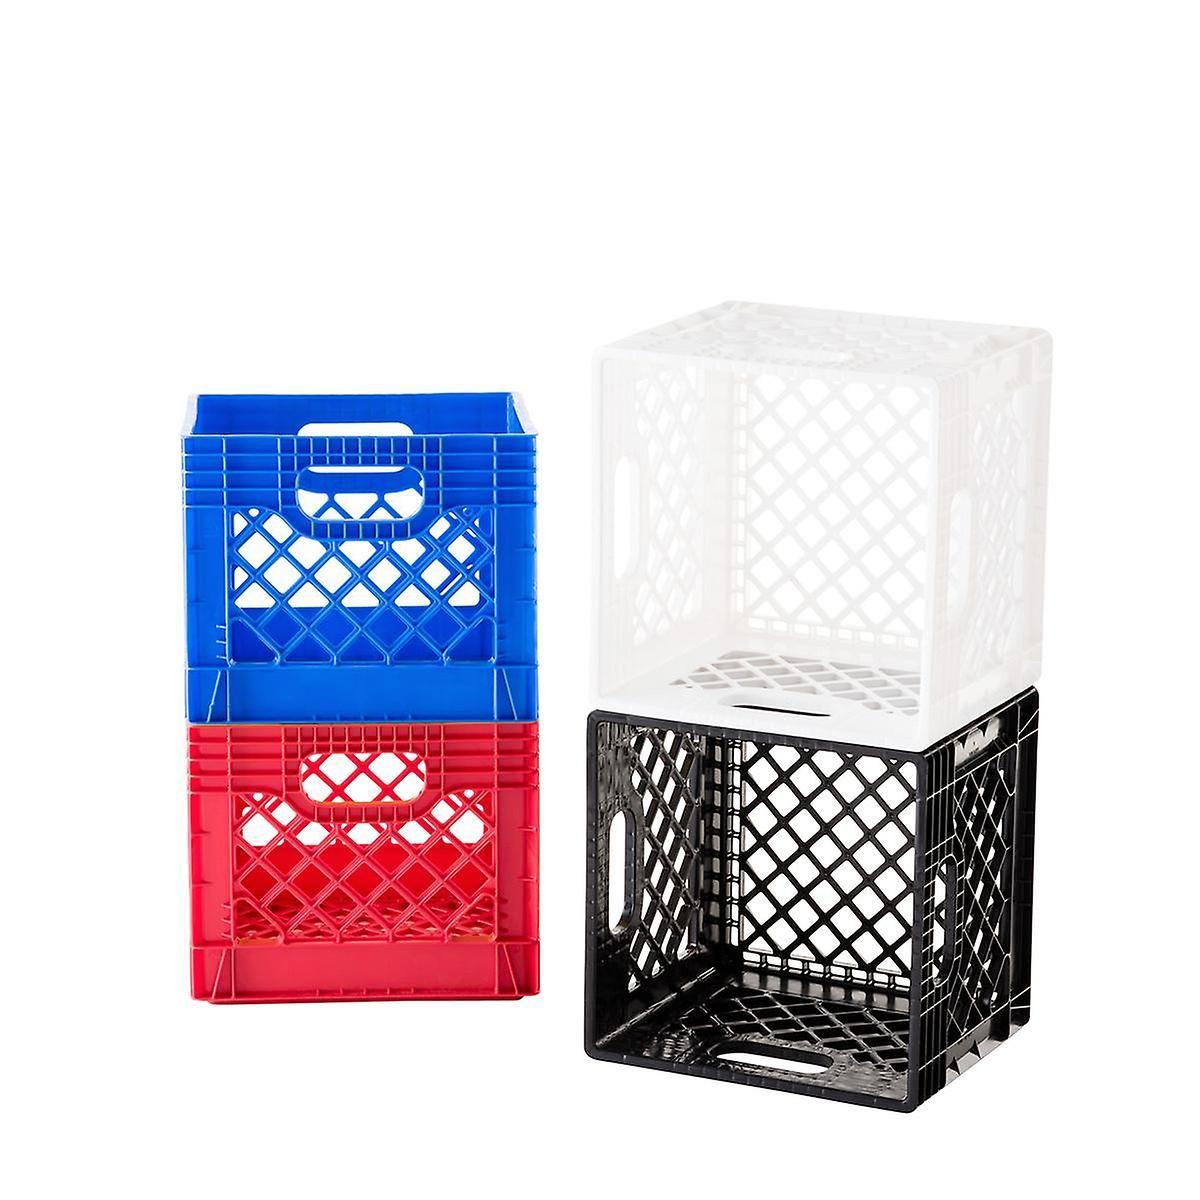 Milk Crate   Authentic Dairy Crate   The Container Store